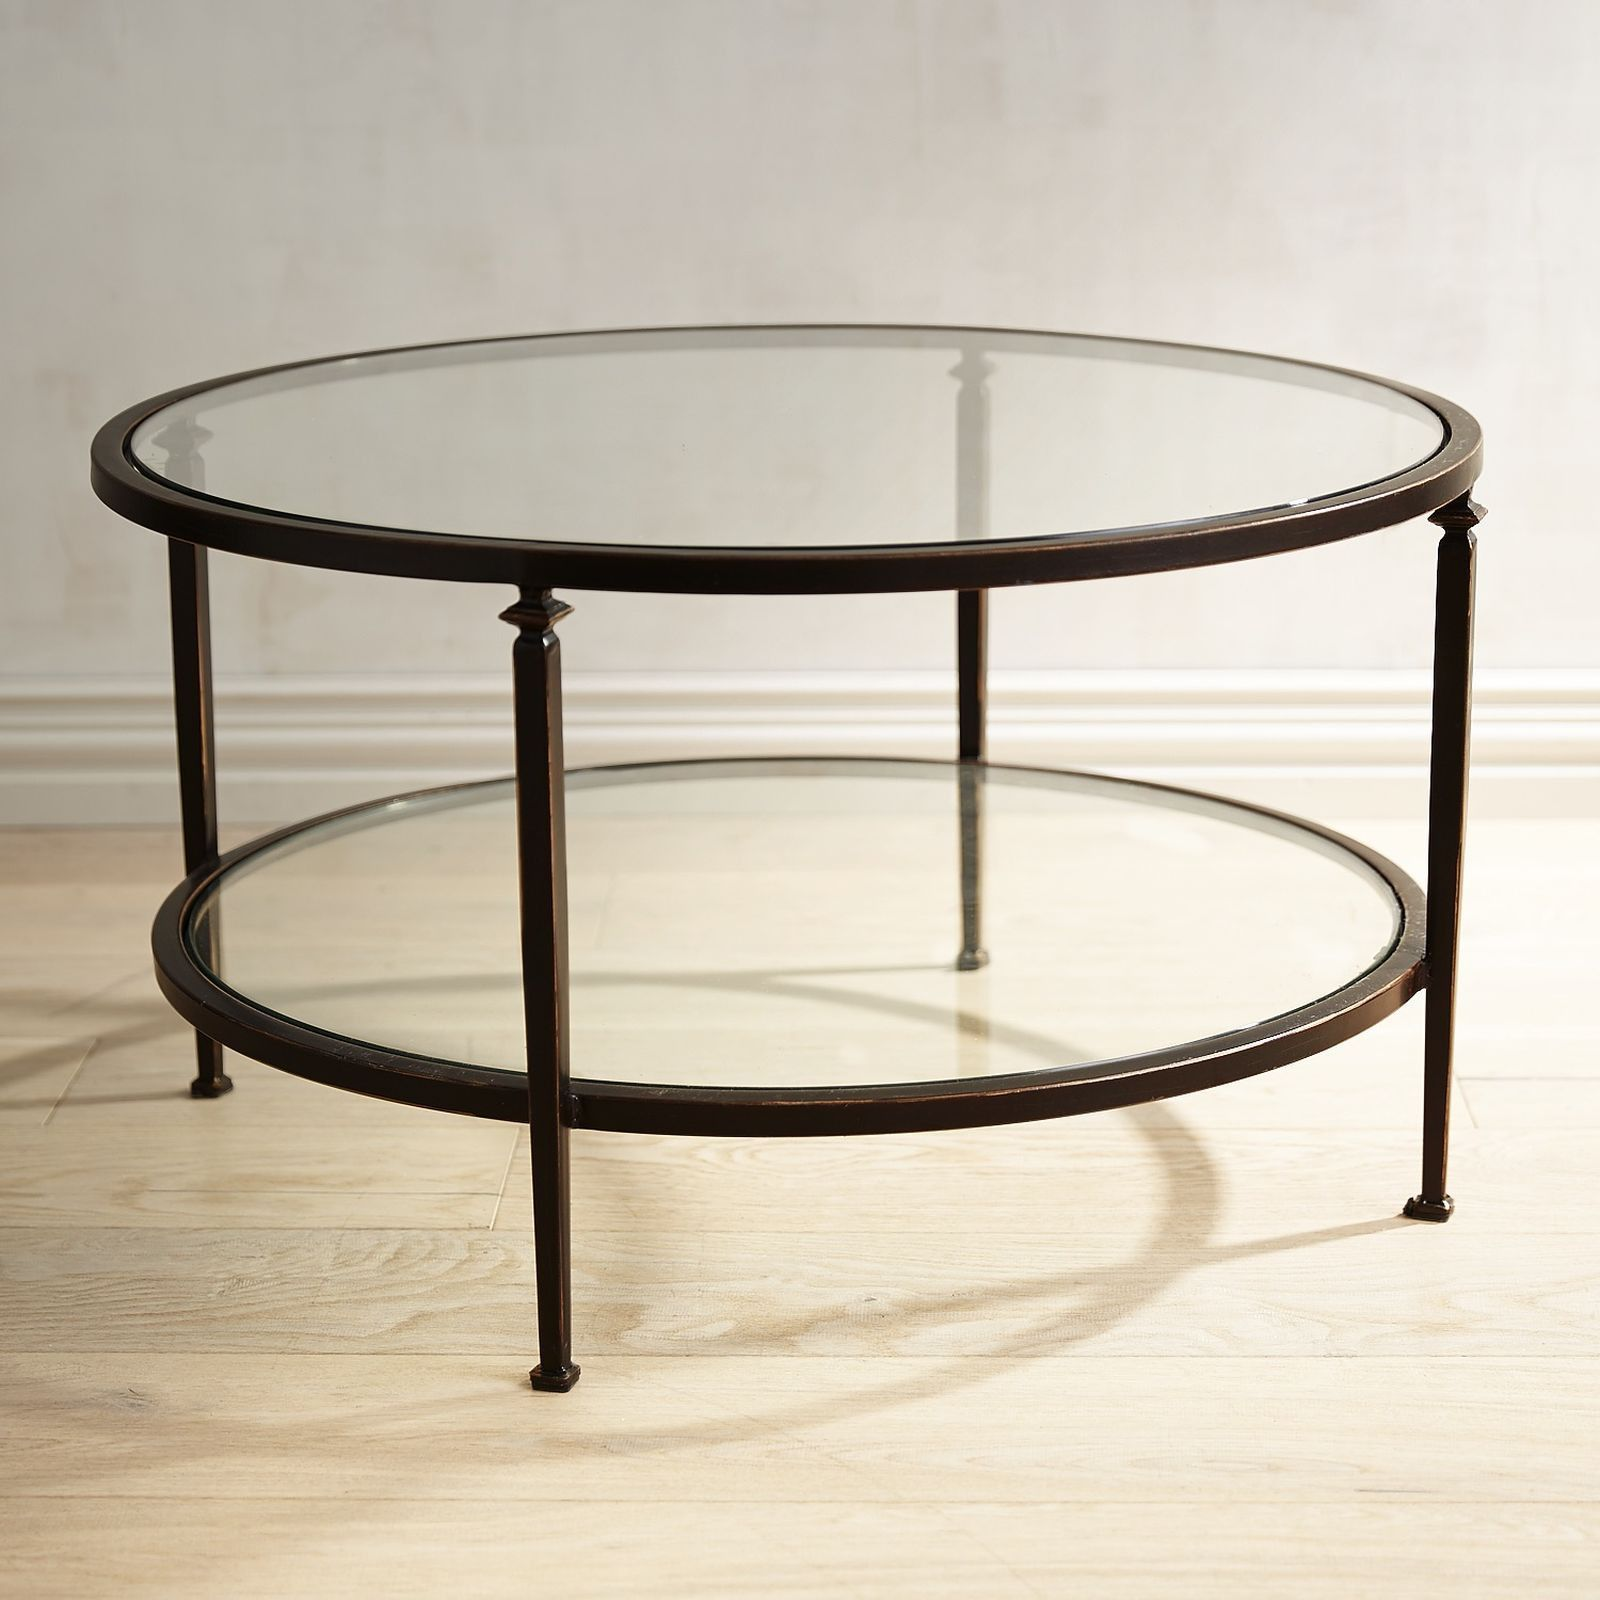 20 glass and bronze coffee table best quality furniture check